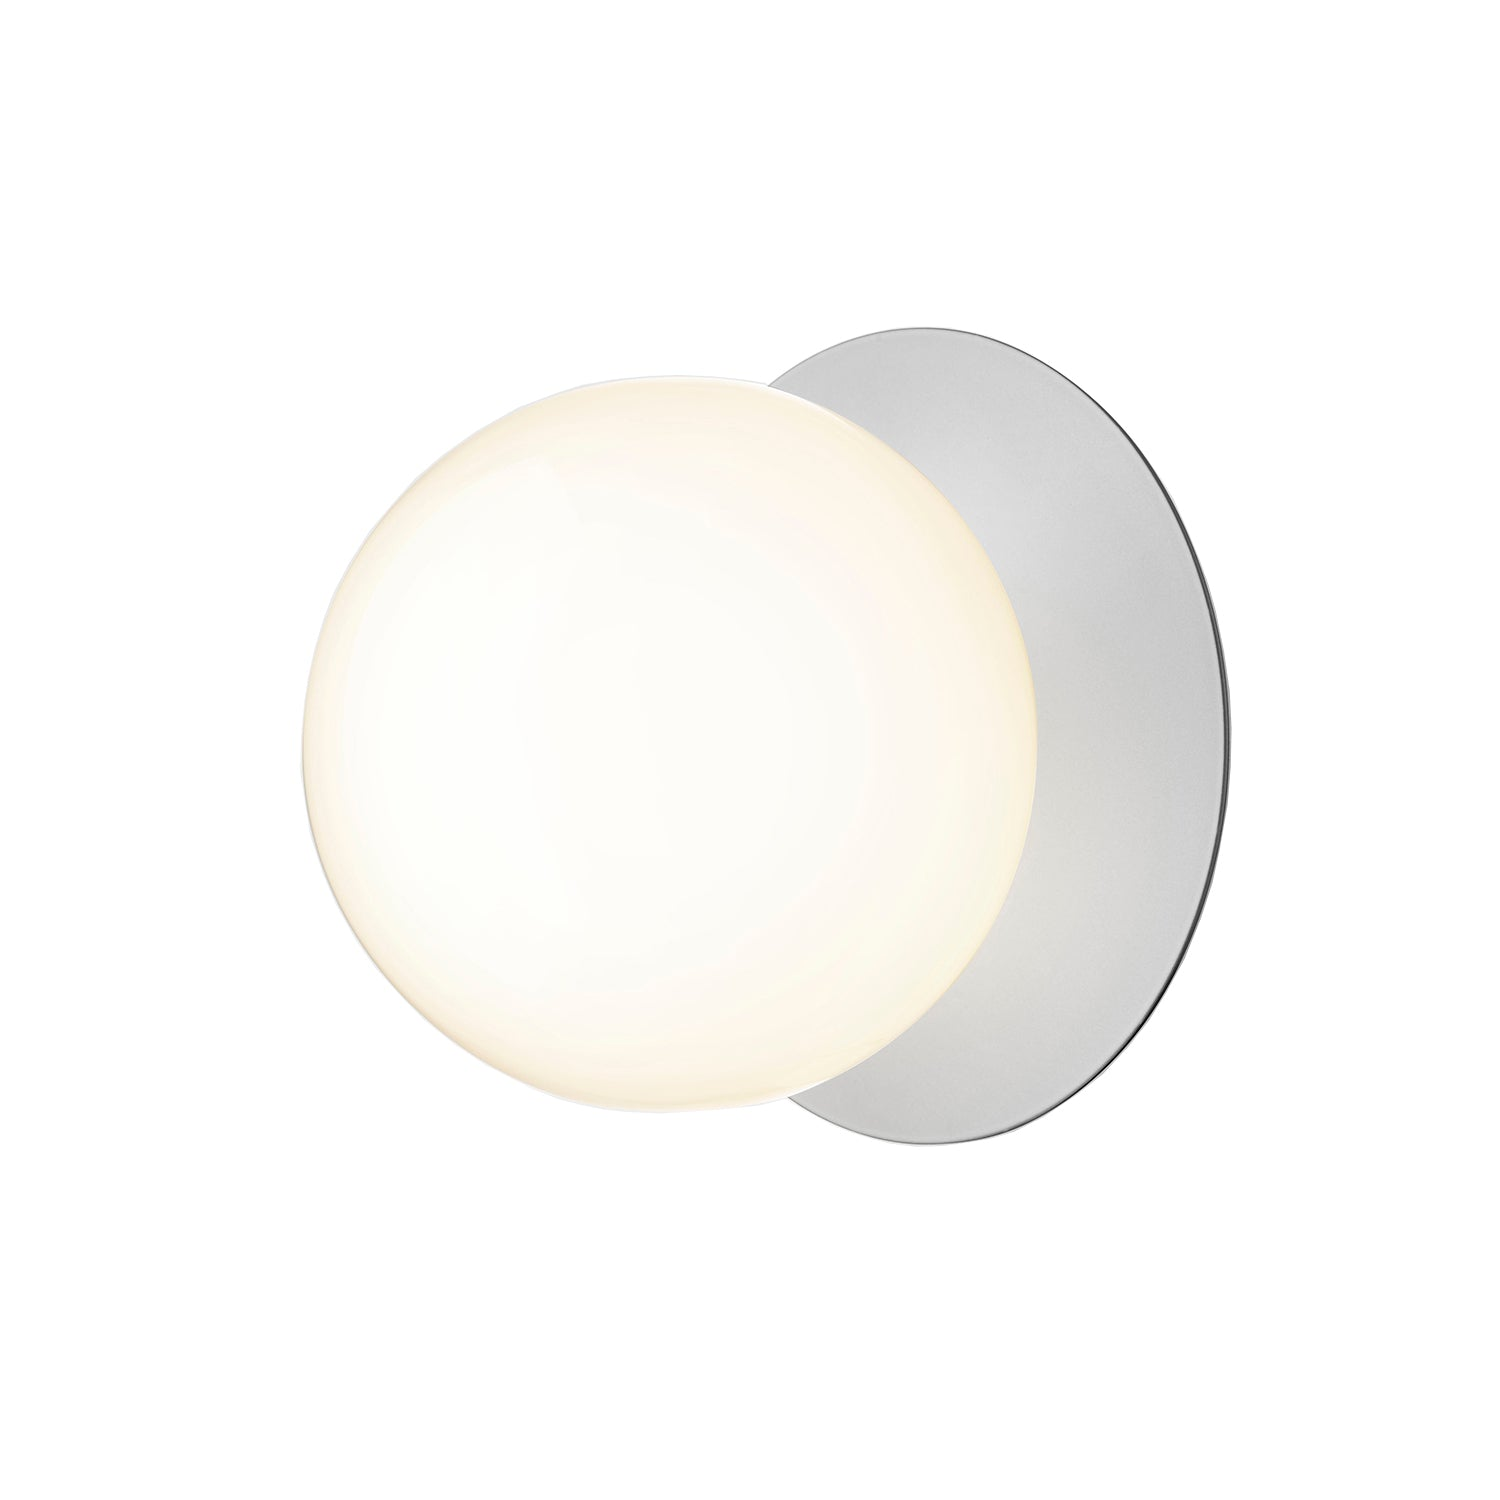 Liila 1 Wall/Ceiling Lamp